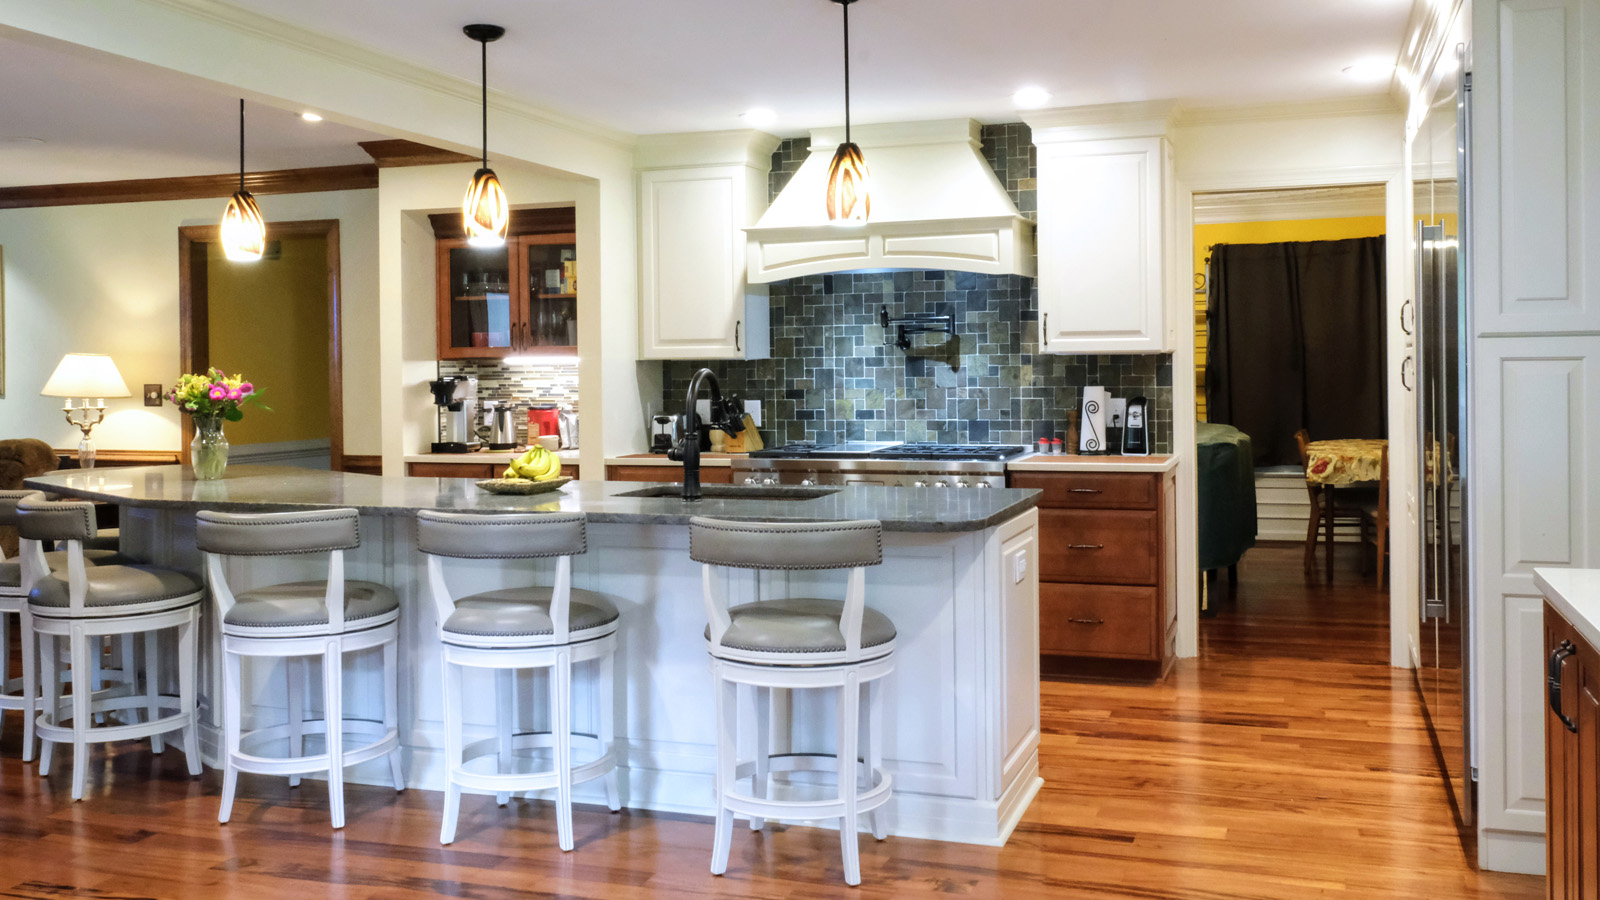 Large open concept kitchen, large sitting island, two toned cabinetry